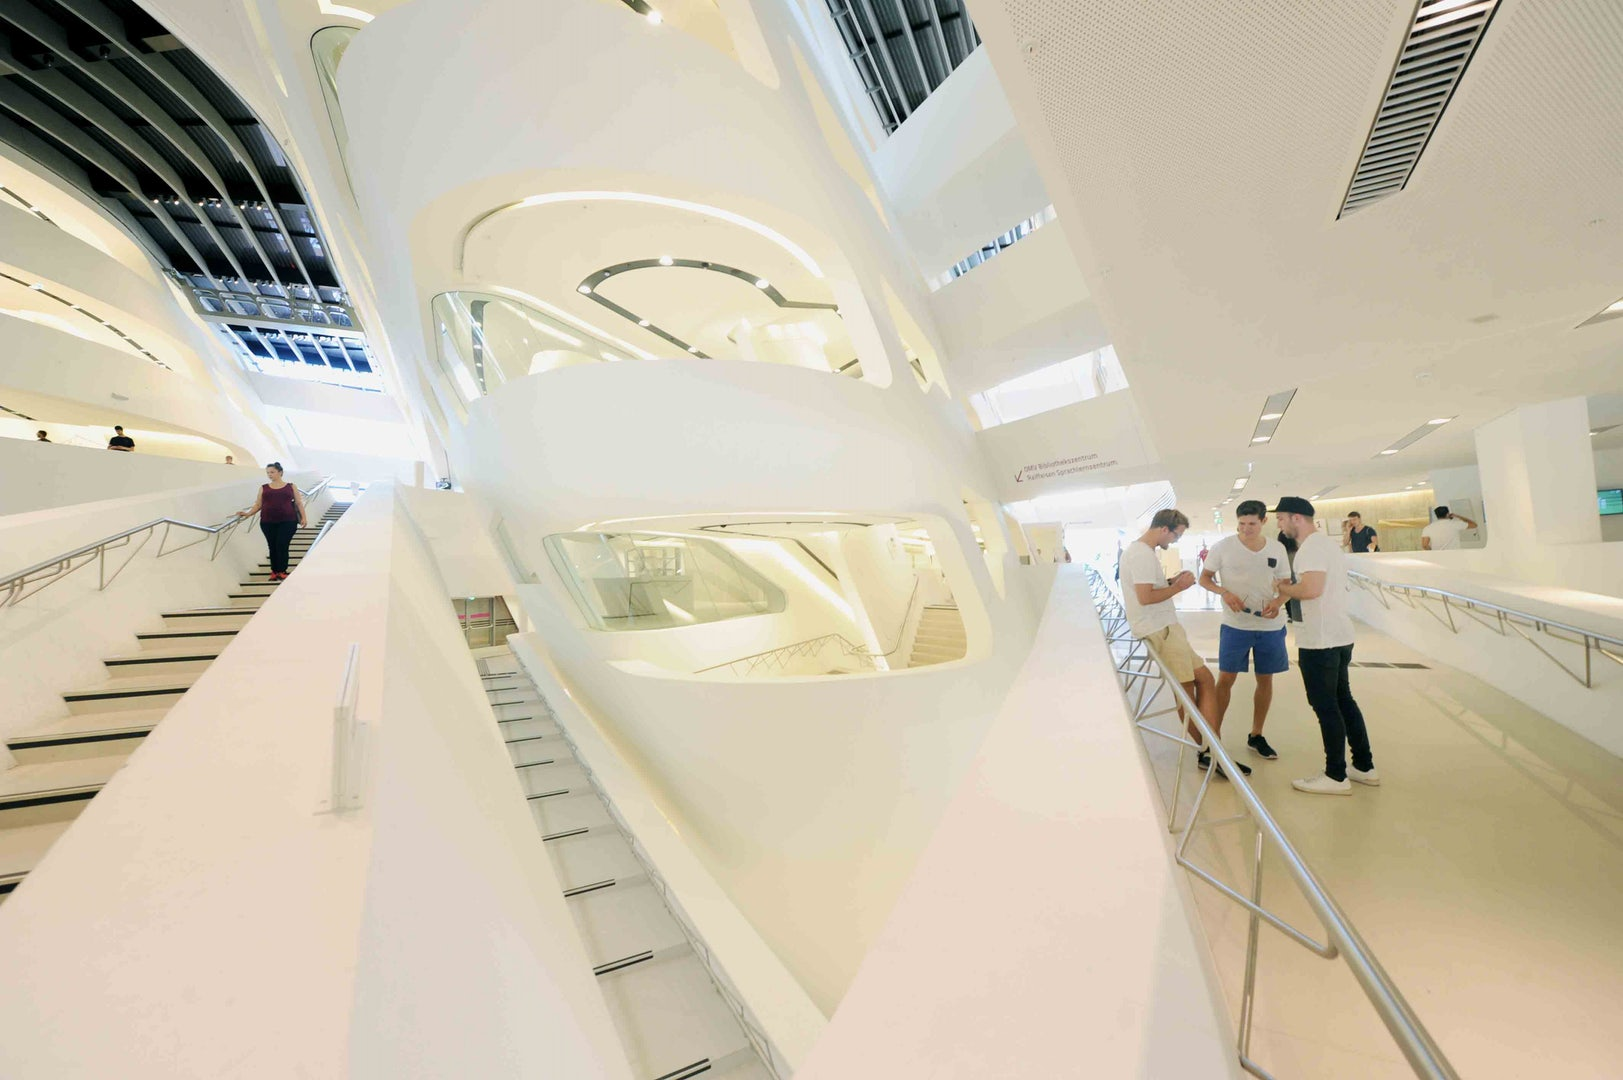 white and modern design of the WU Campus